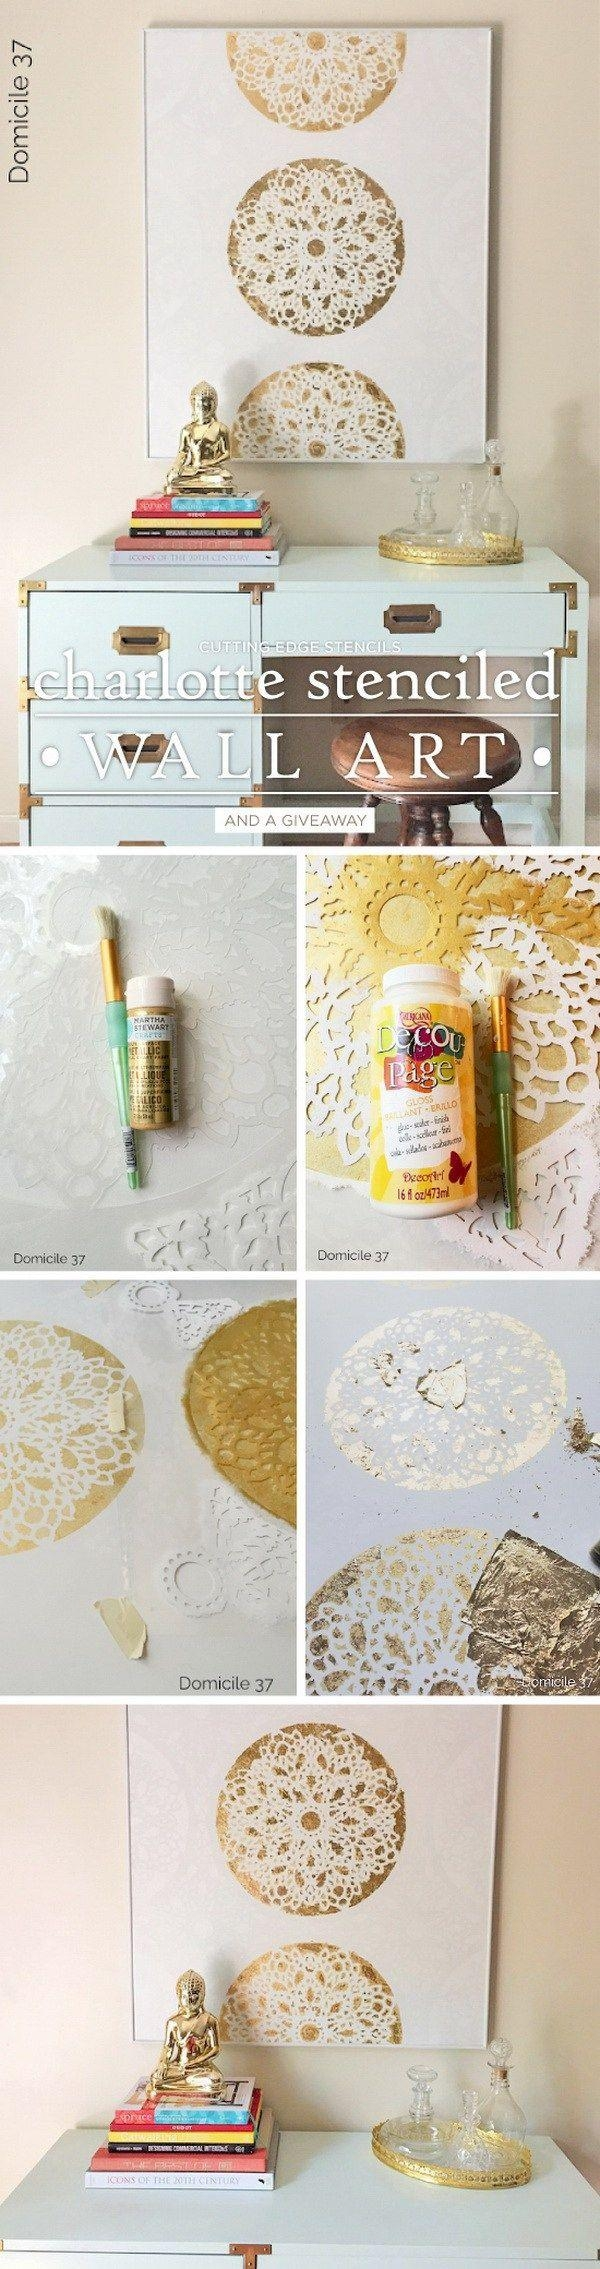 Best 25+ Gold Wall Art Ideas On Pinterest | Decorative Wall In Silver And Gold Wall Art (View 2 of 20)